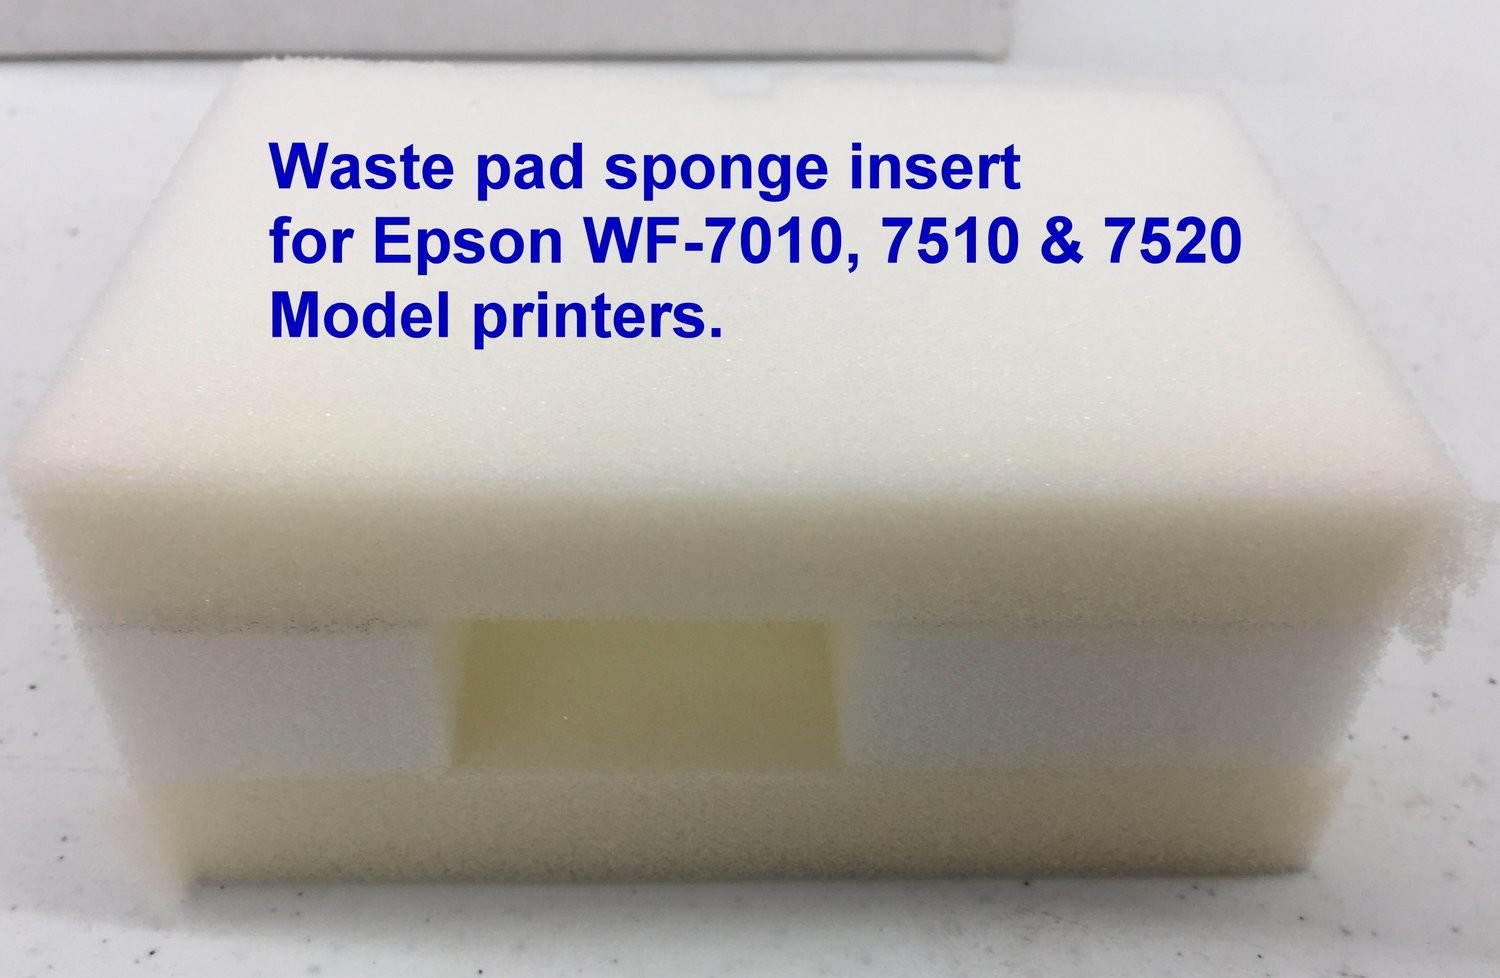 Waste pad 7010/7510 & 7520 replacements insert sponge